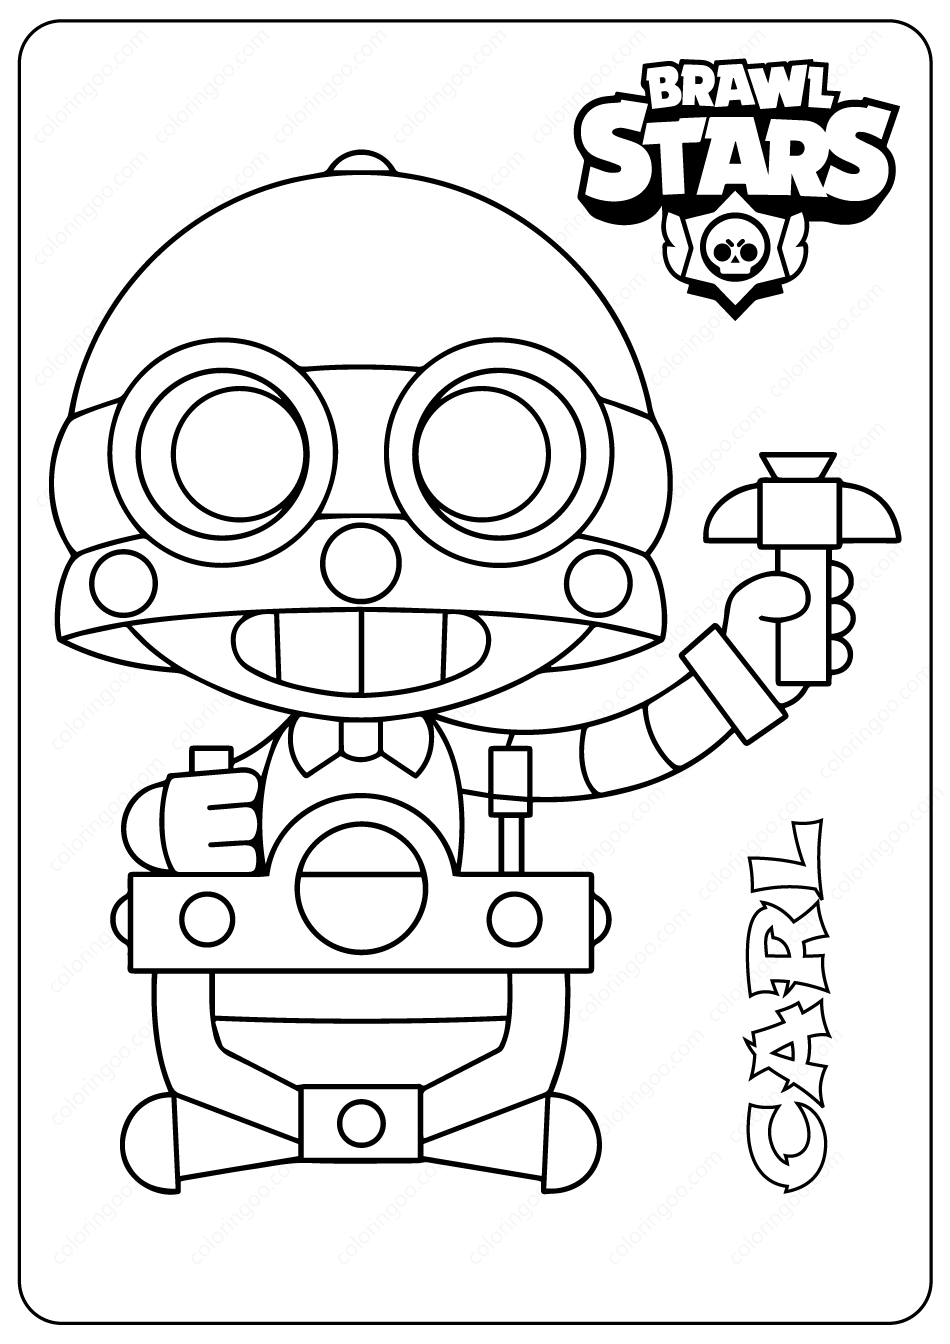 Printable Brawl Stars Carl Pdf Coloring Pages In 2020 Star Coloring Pages Coloring Pages Star Birthday Party Decorations